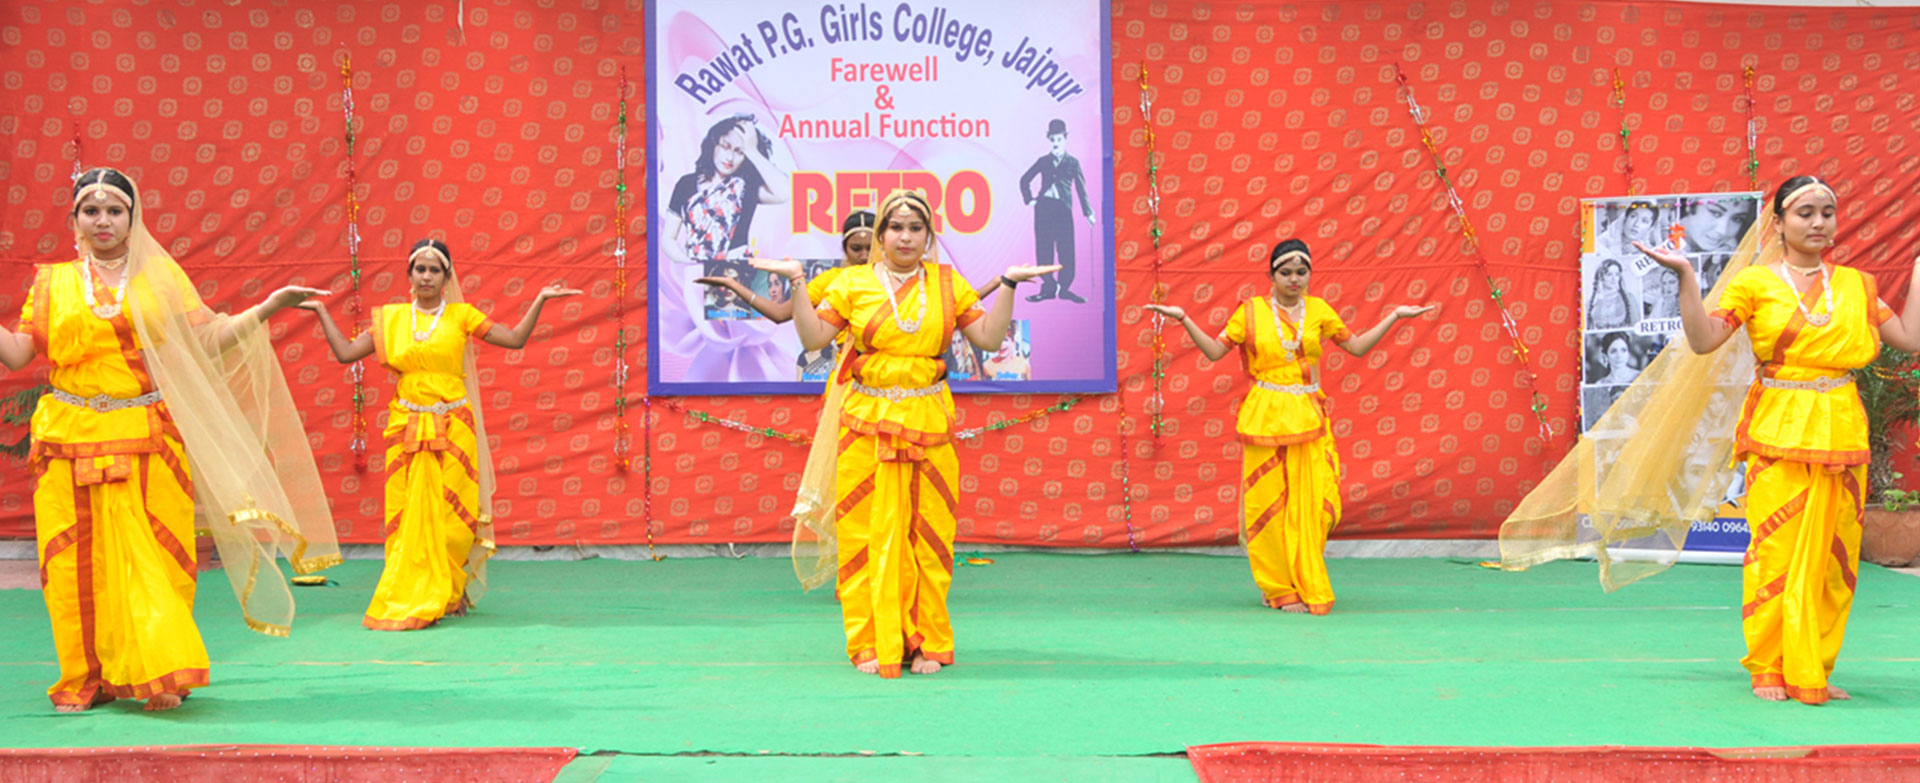 rawat-pg-girls-college-best-girls-college-in-jaipur